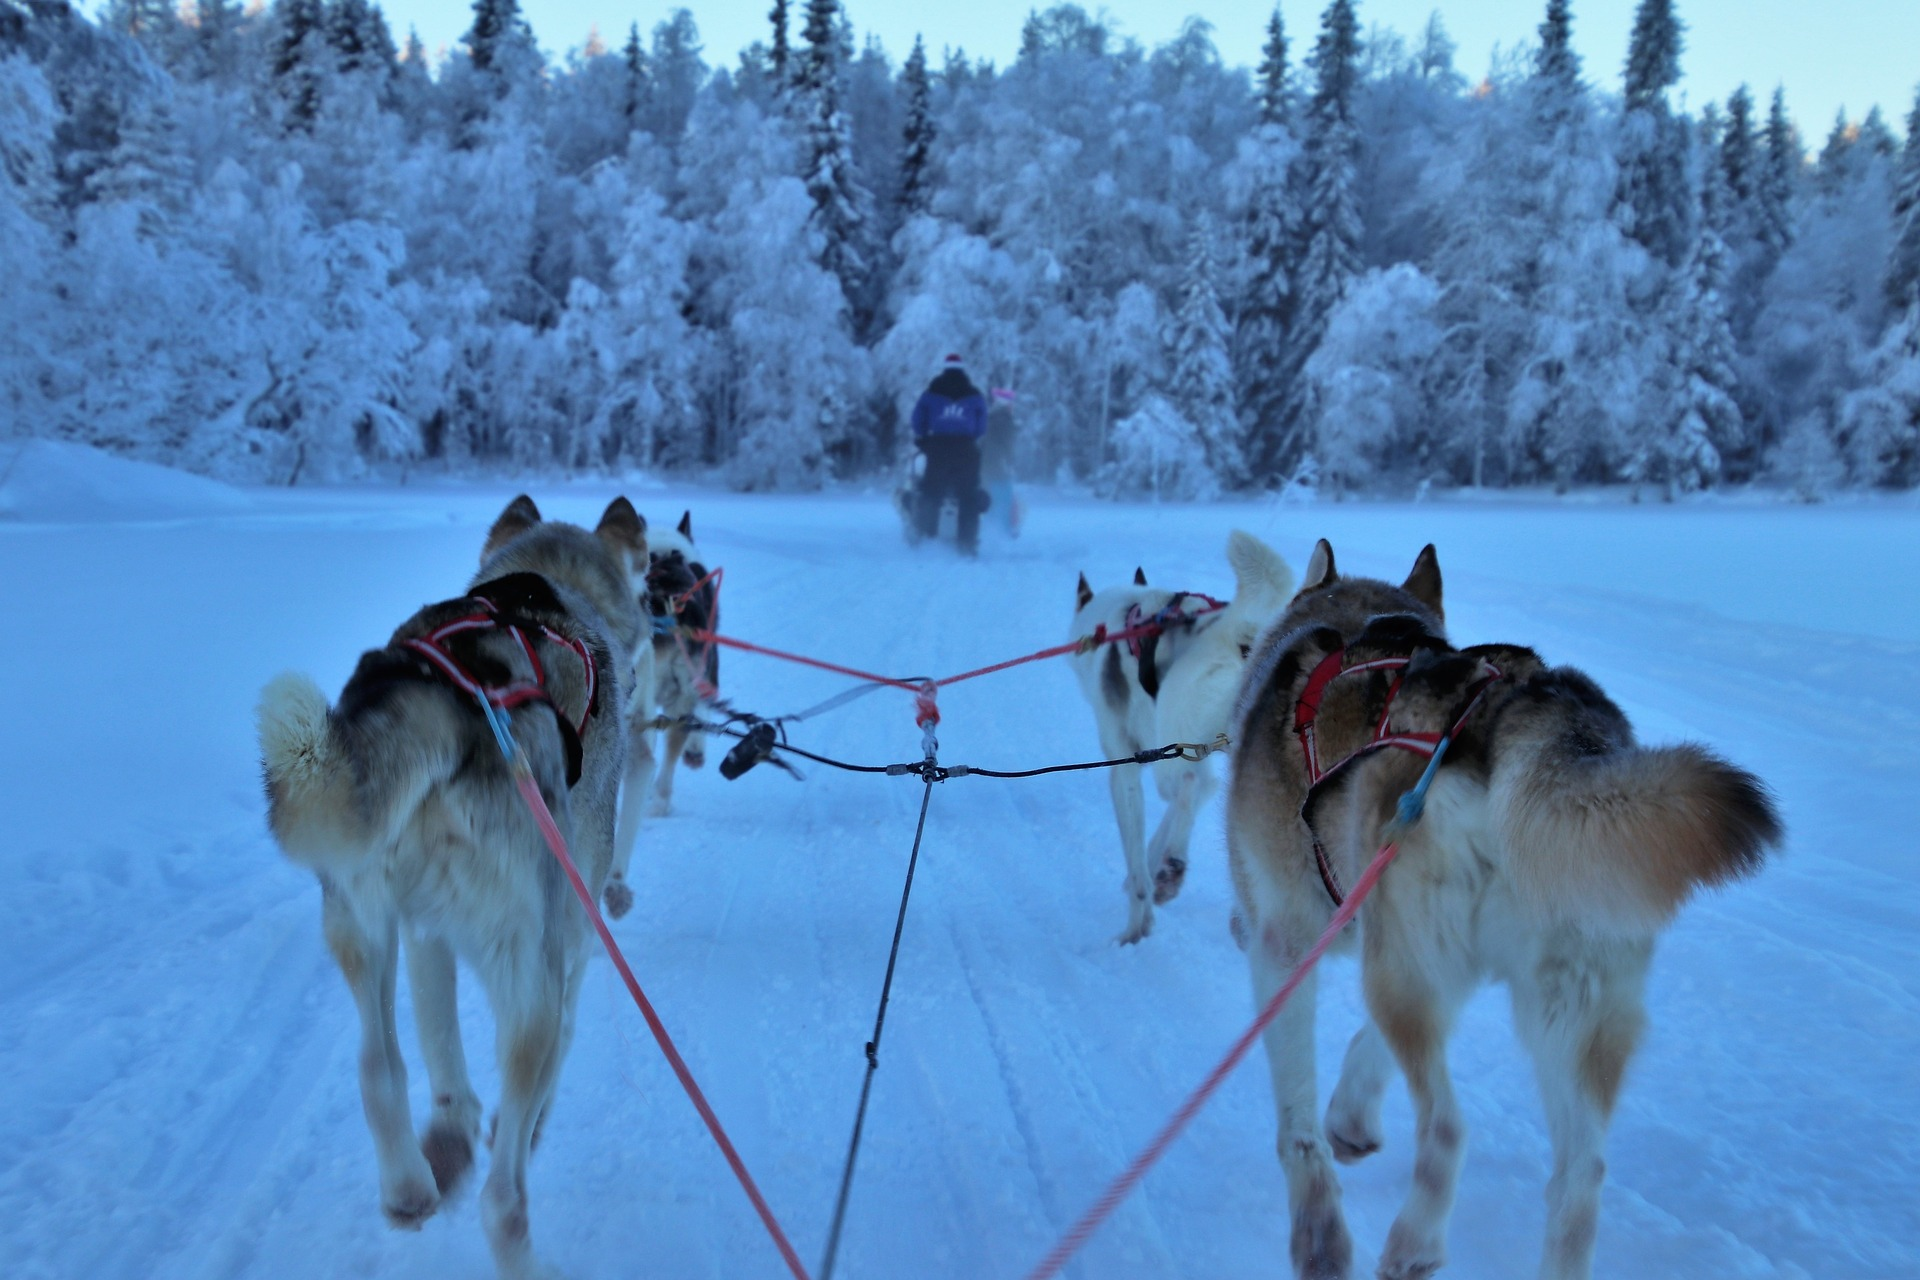 Sled dogs travel